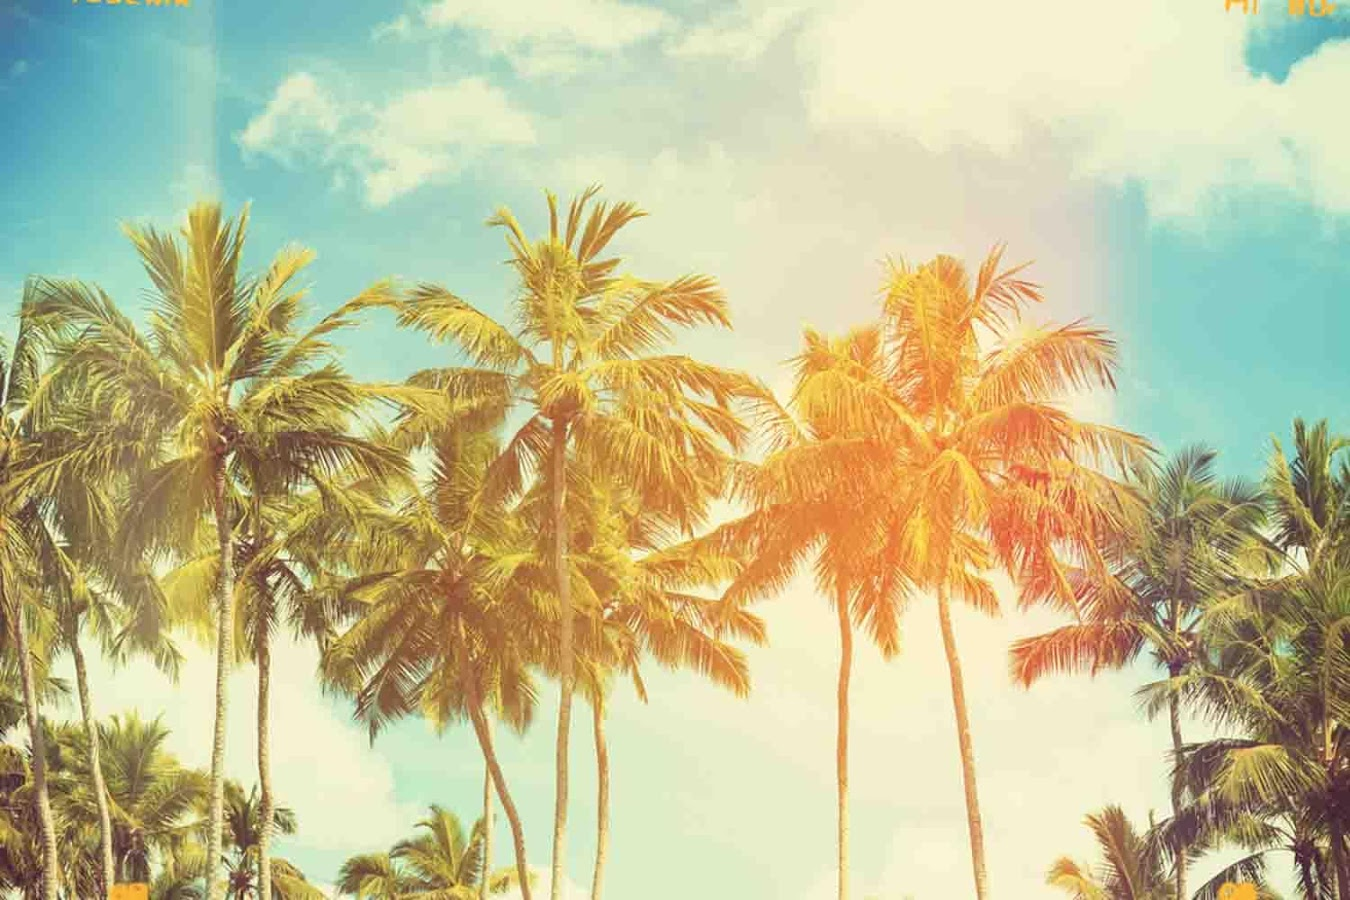 Wallpaper Palm Tree   Android Apps on Google Play 1350x900